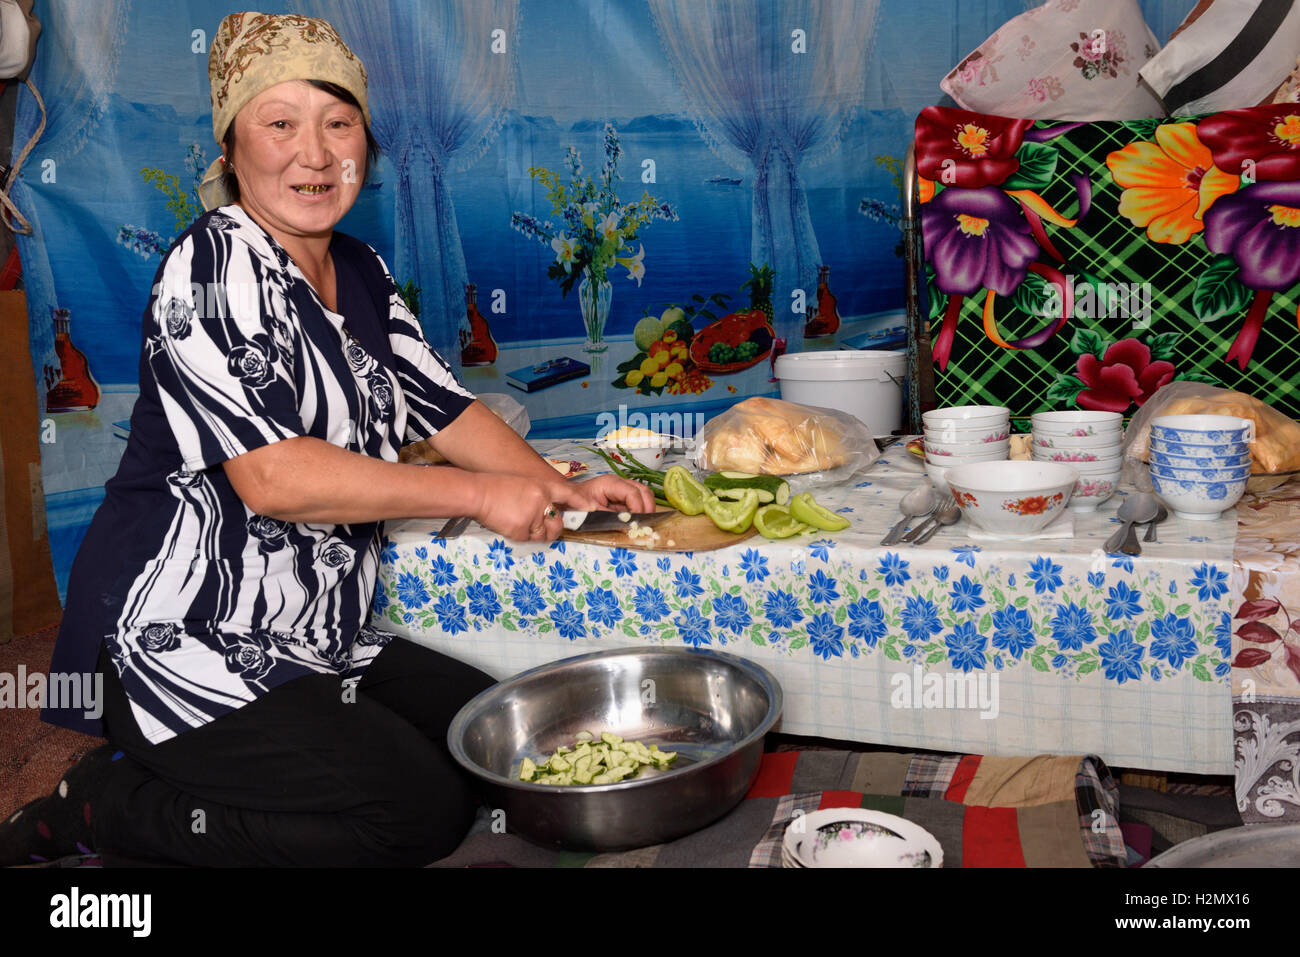 Kazakh woman preparing lunch for guests inside a yurt on the Assy Plateau Kazakhstan - Stock Image